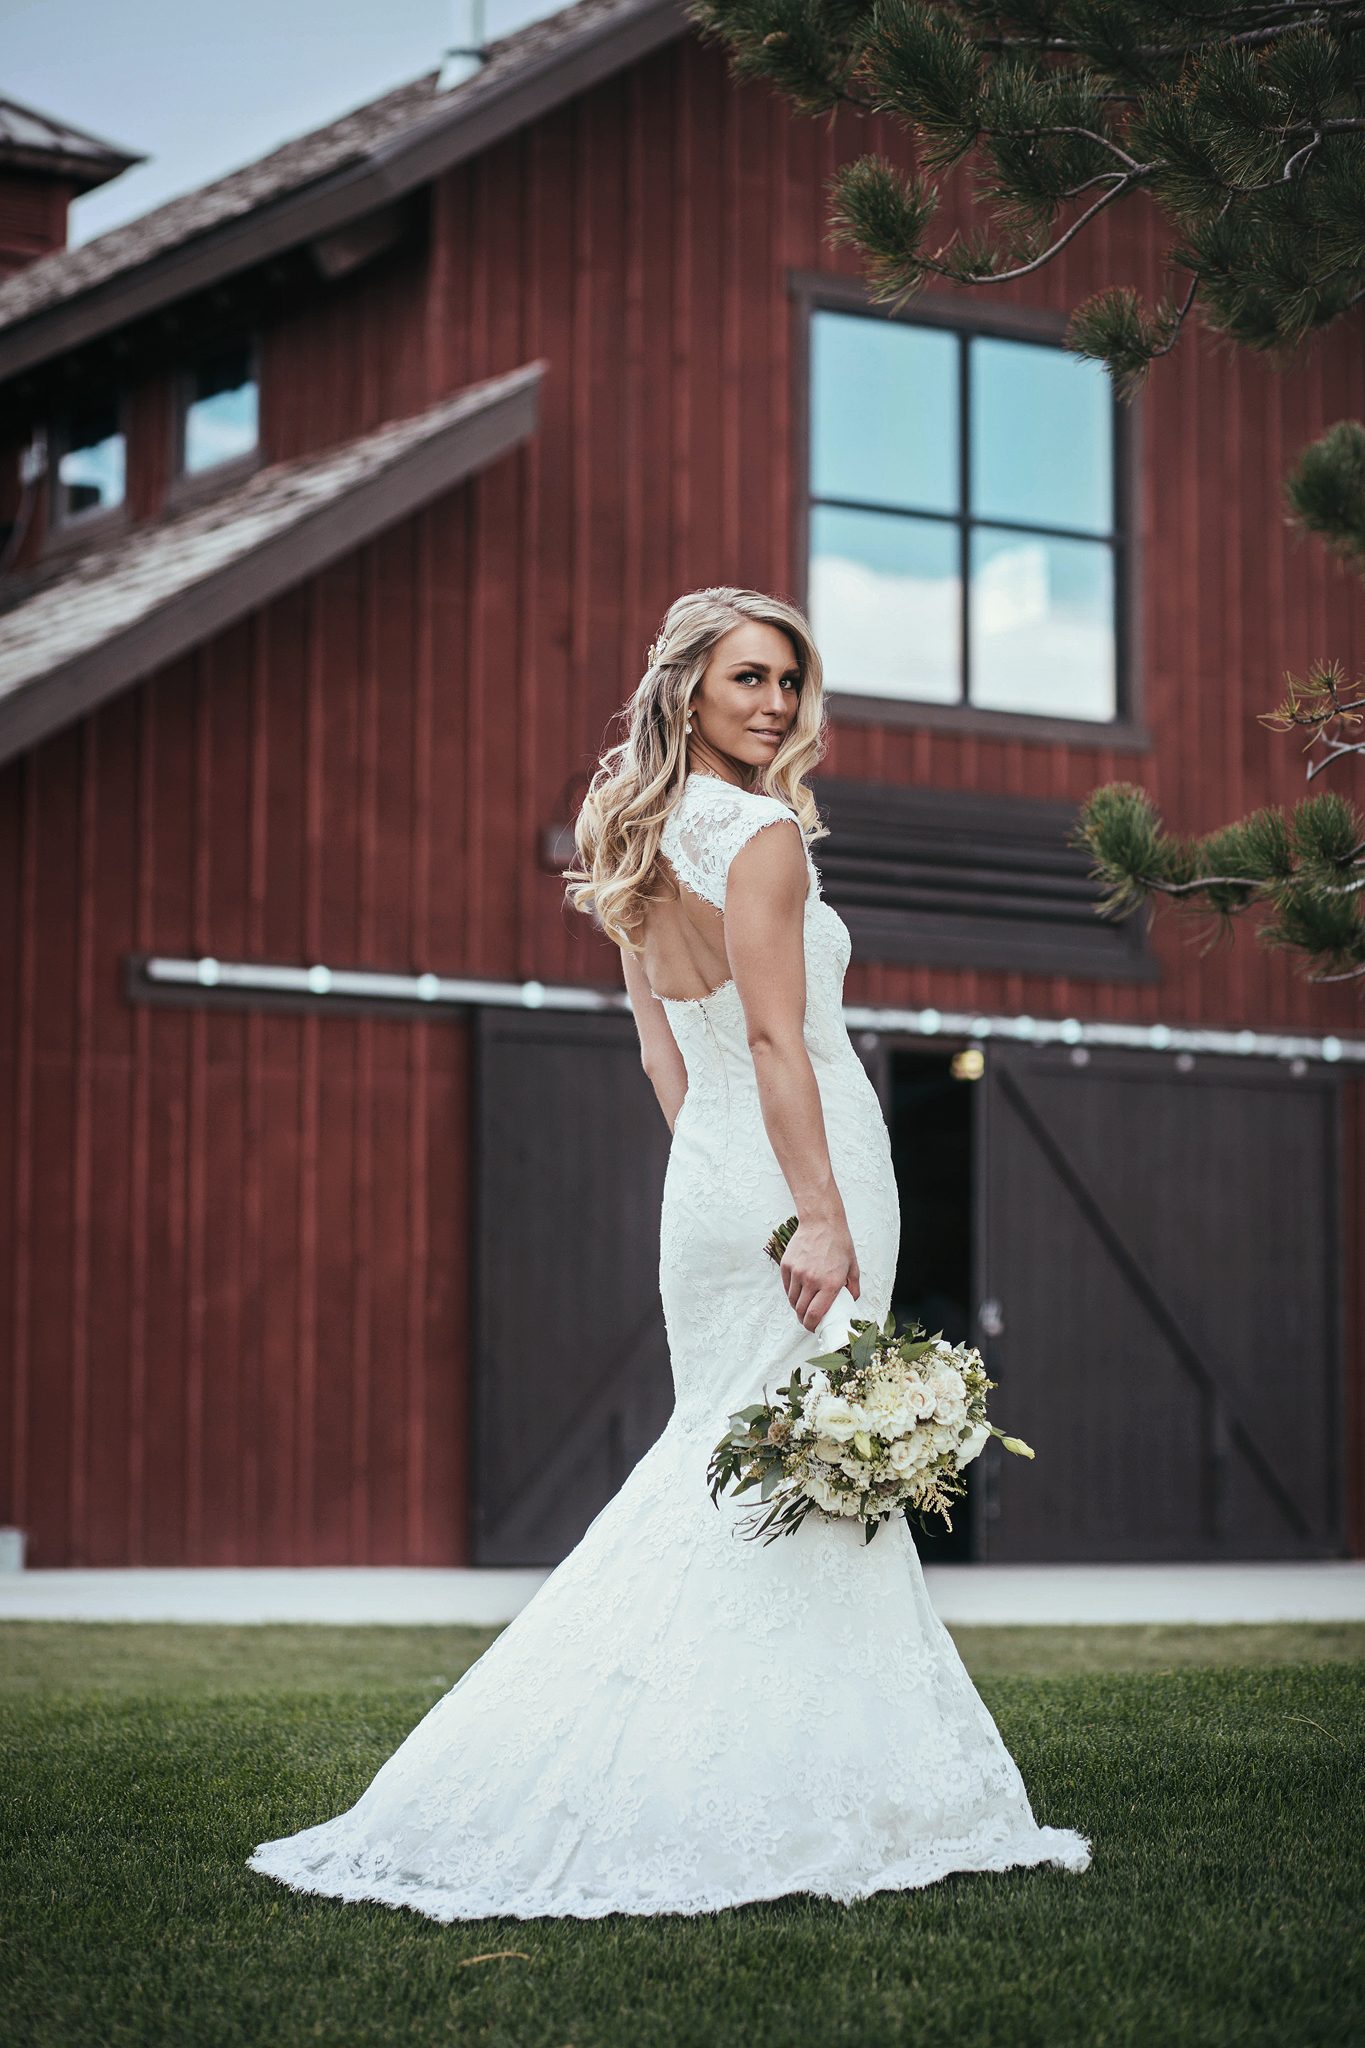 Cincinnati-Dayton-and-Traveling-Wedding-Photographer-Big-Red-Barn-Highland-Meadows-Golf-Course-CO-68